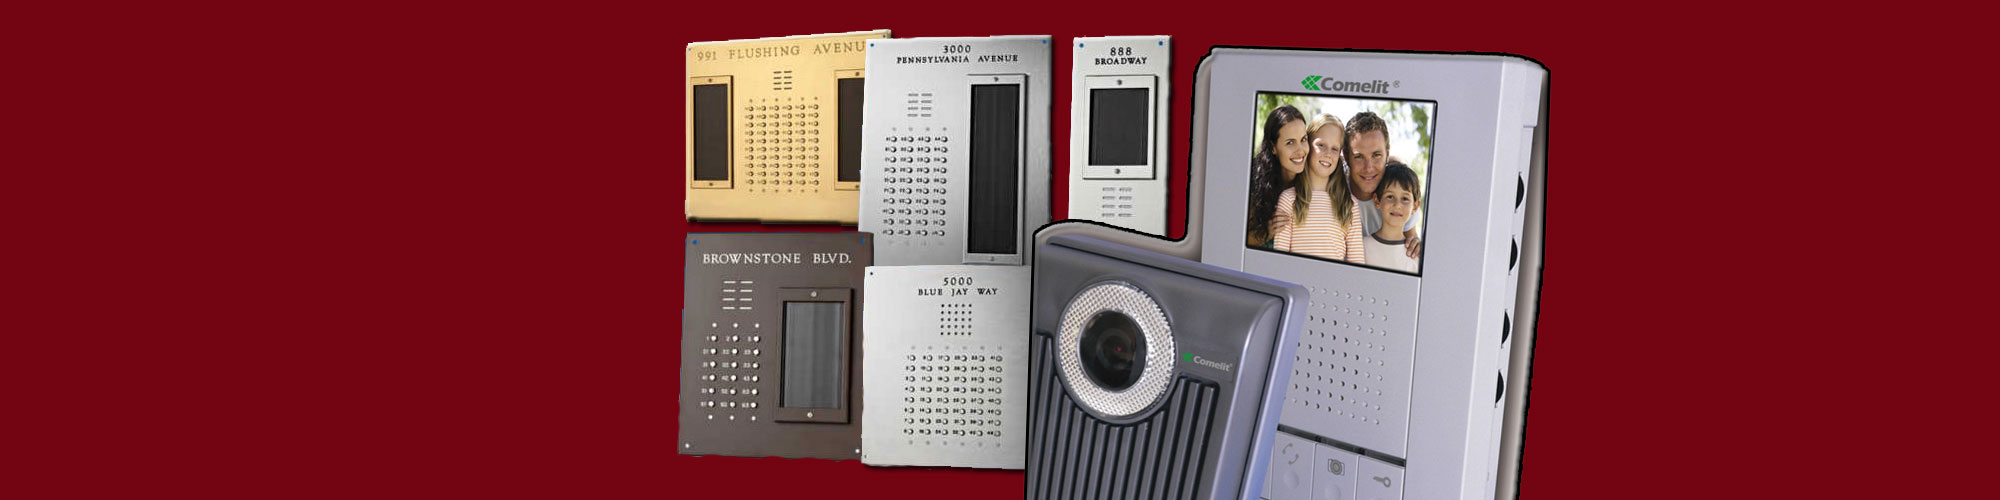 Intercom Units and Panels